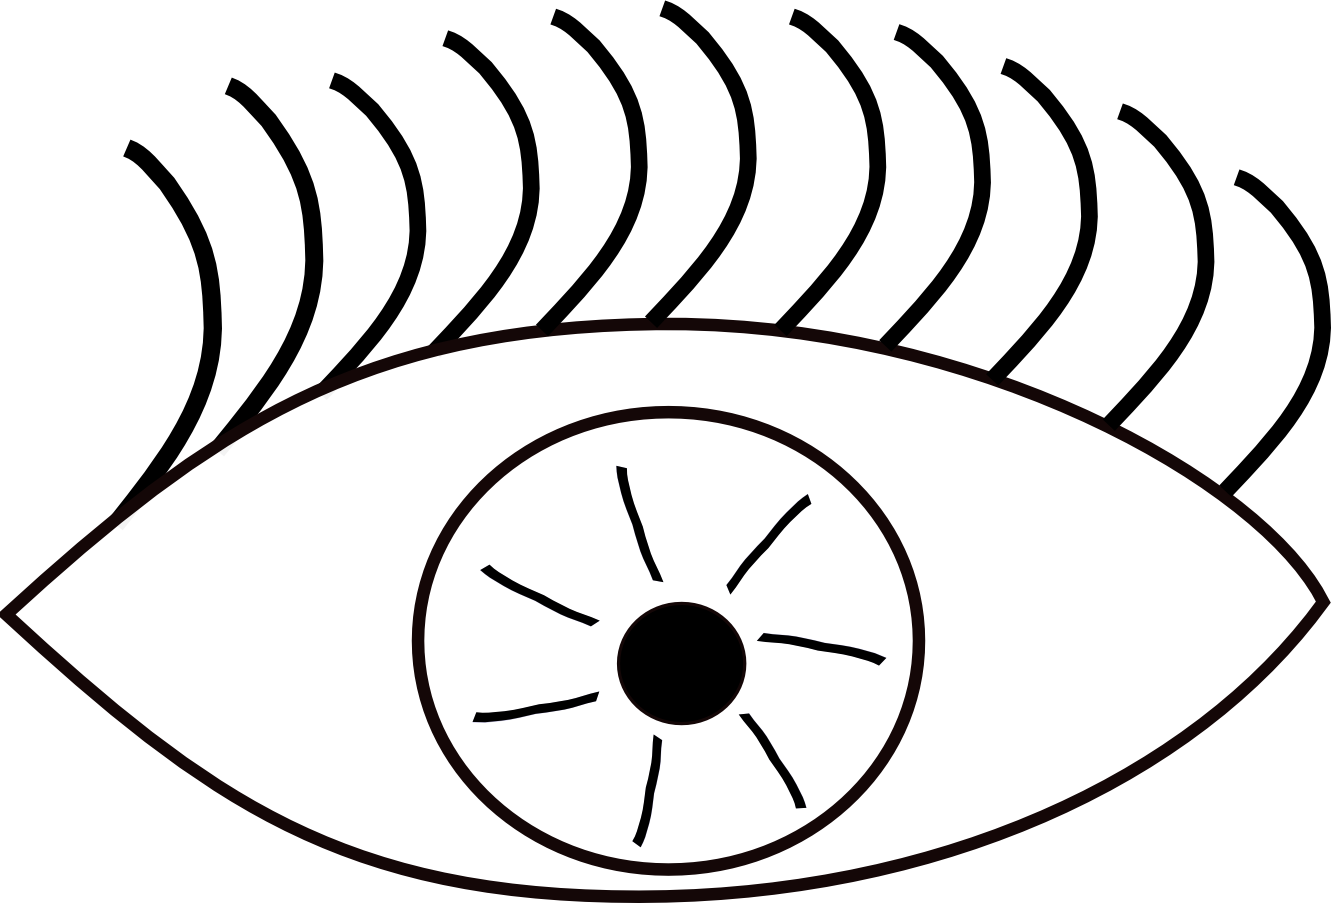 Eyes  black and white eye clip art black and white free clipart images 4